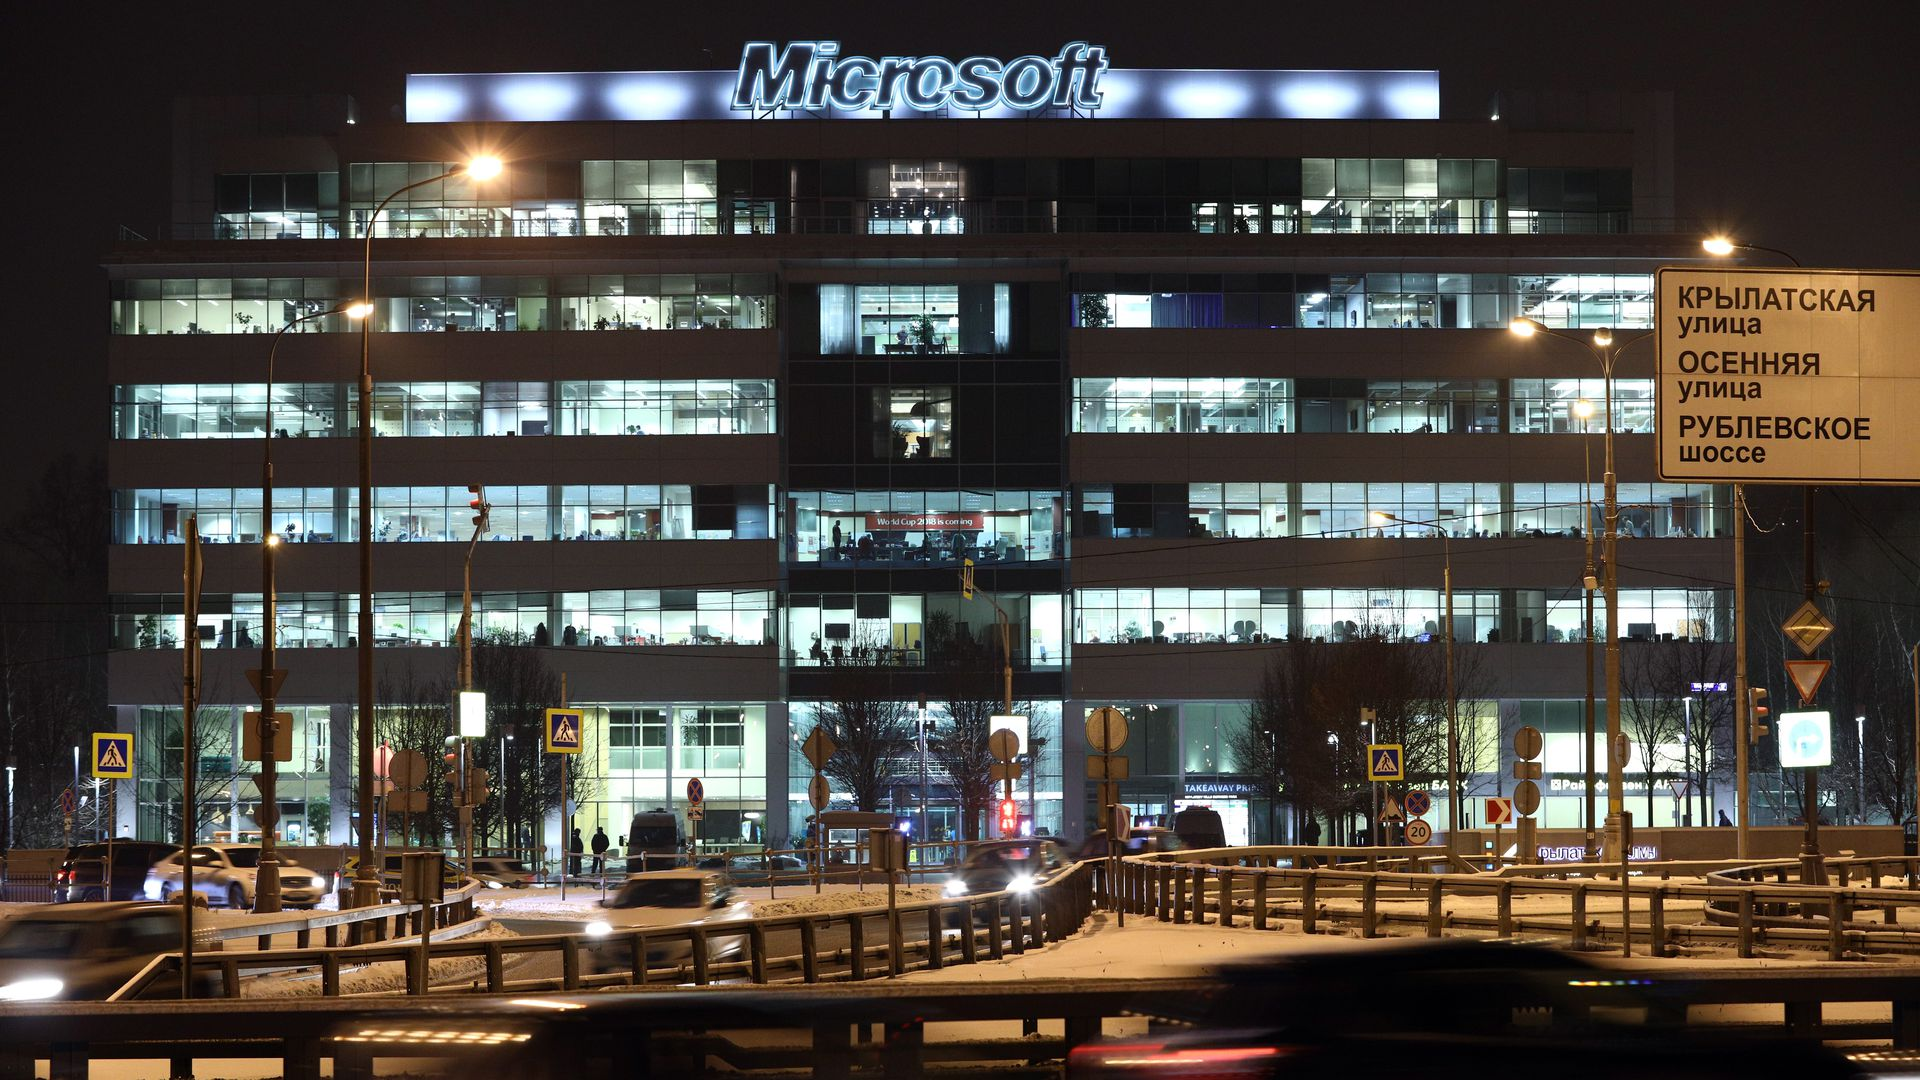 Microsoft's Russian headquarters office building at night